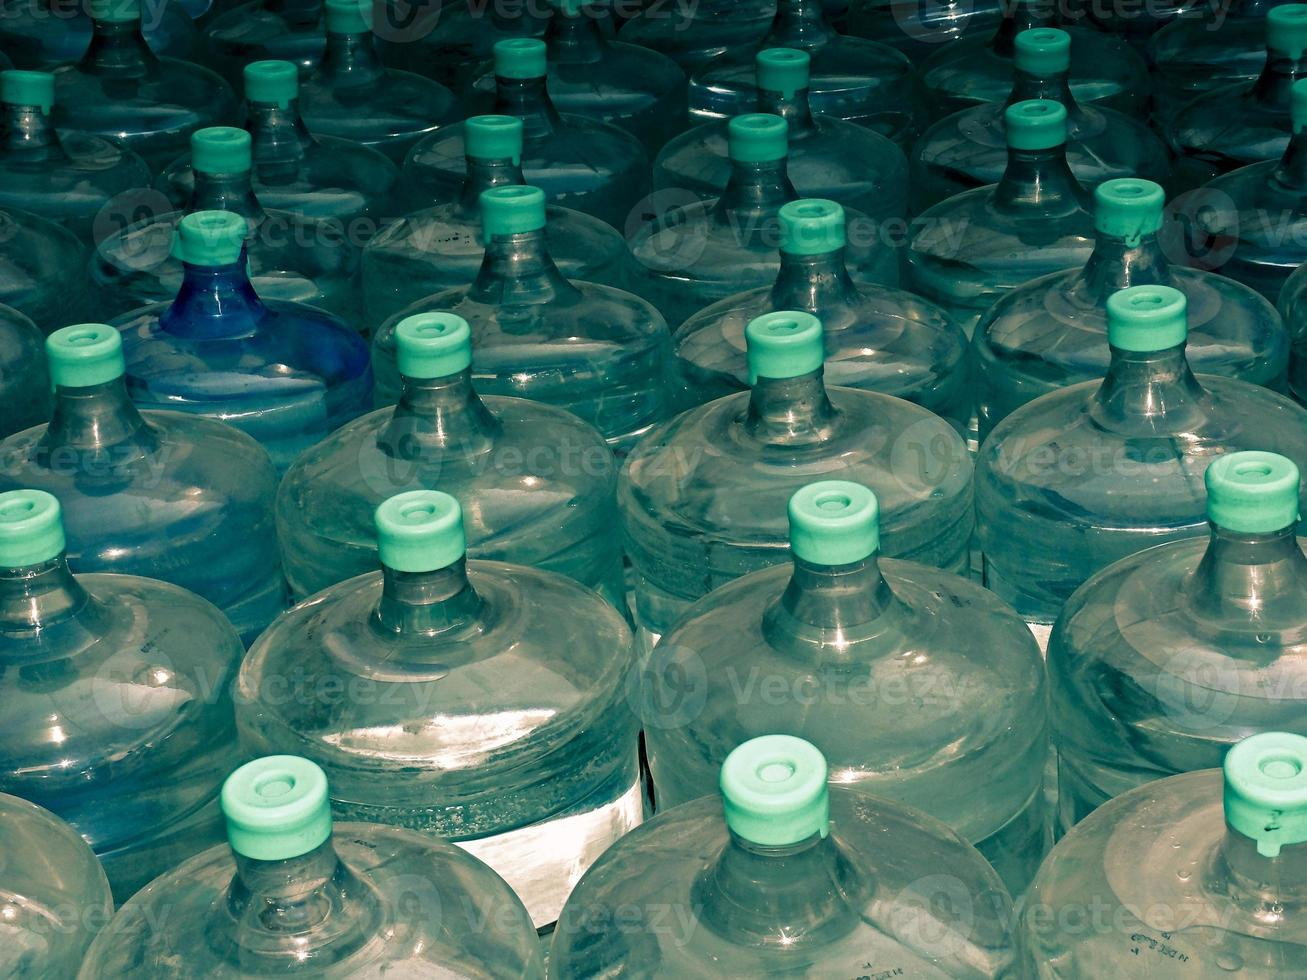 Drinking water containers photo